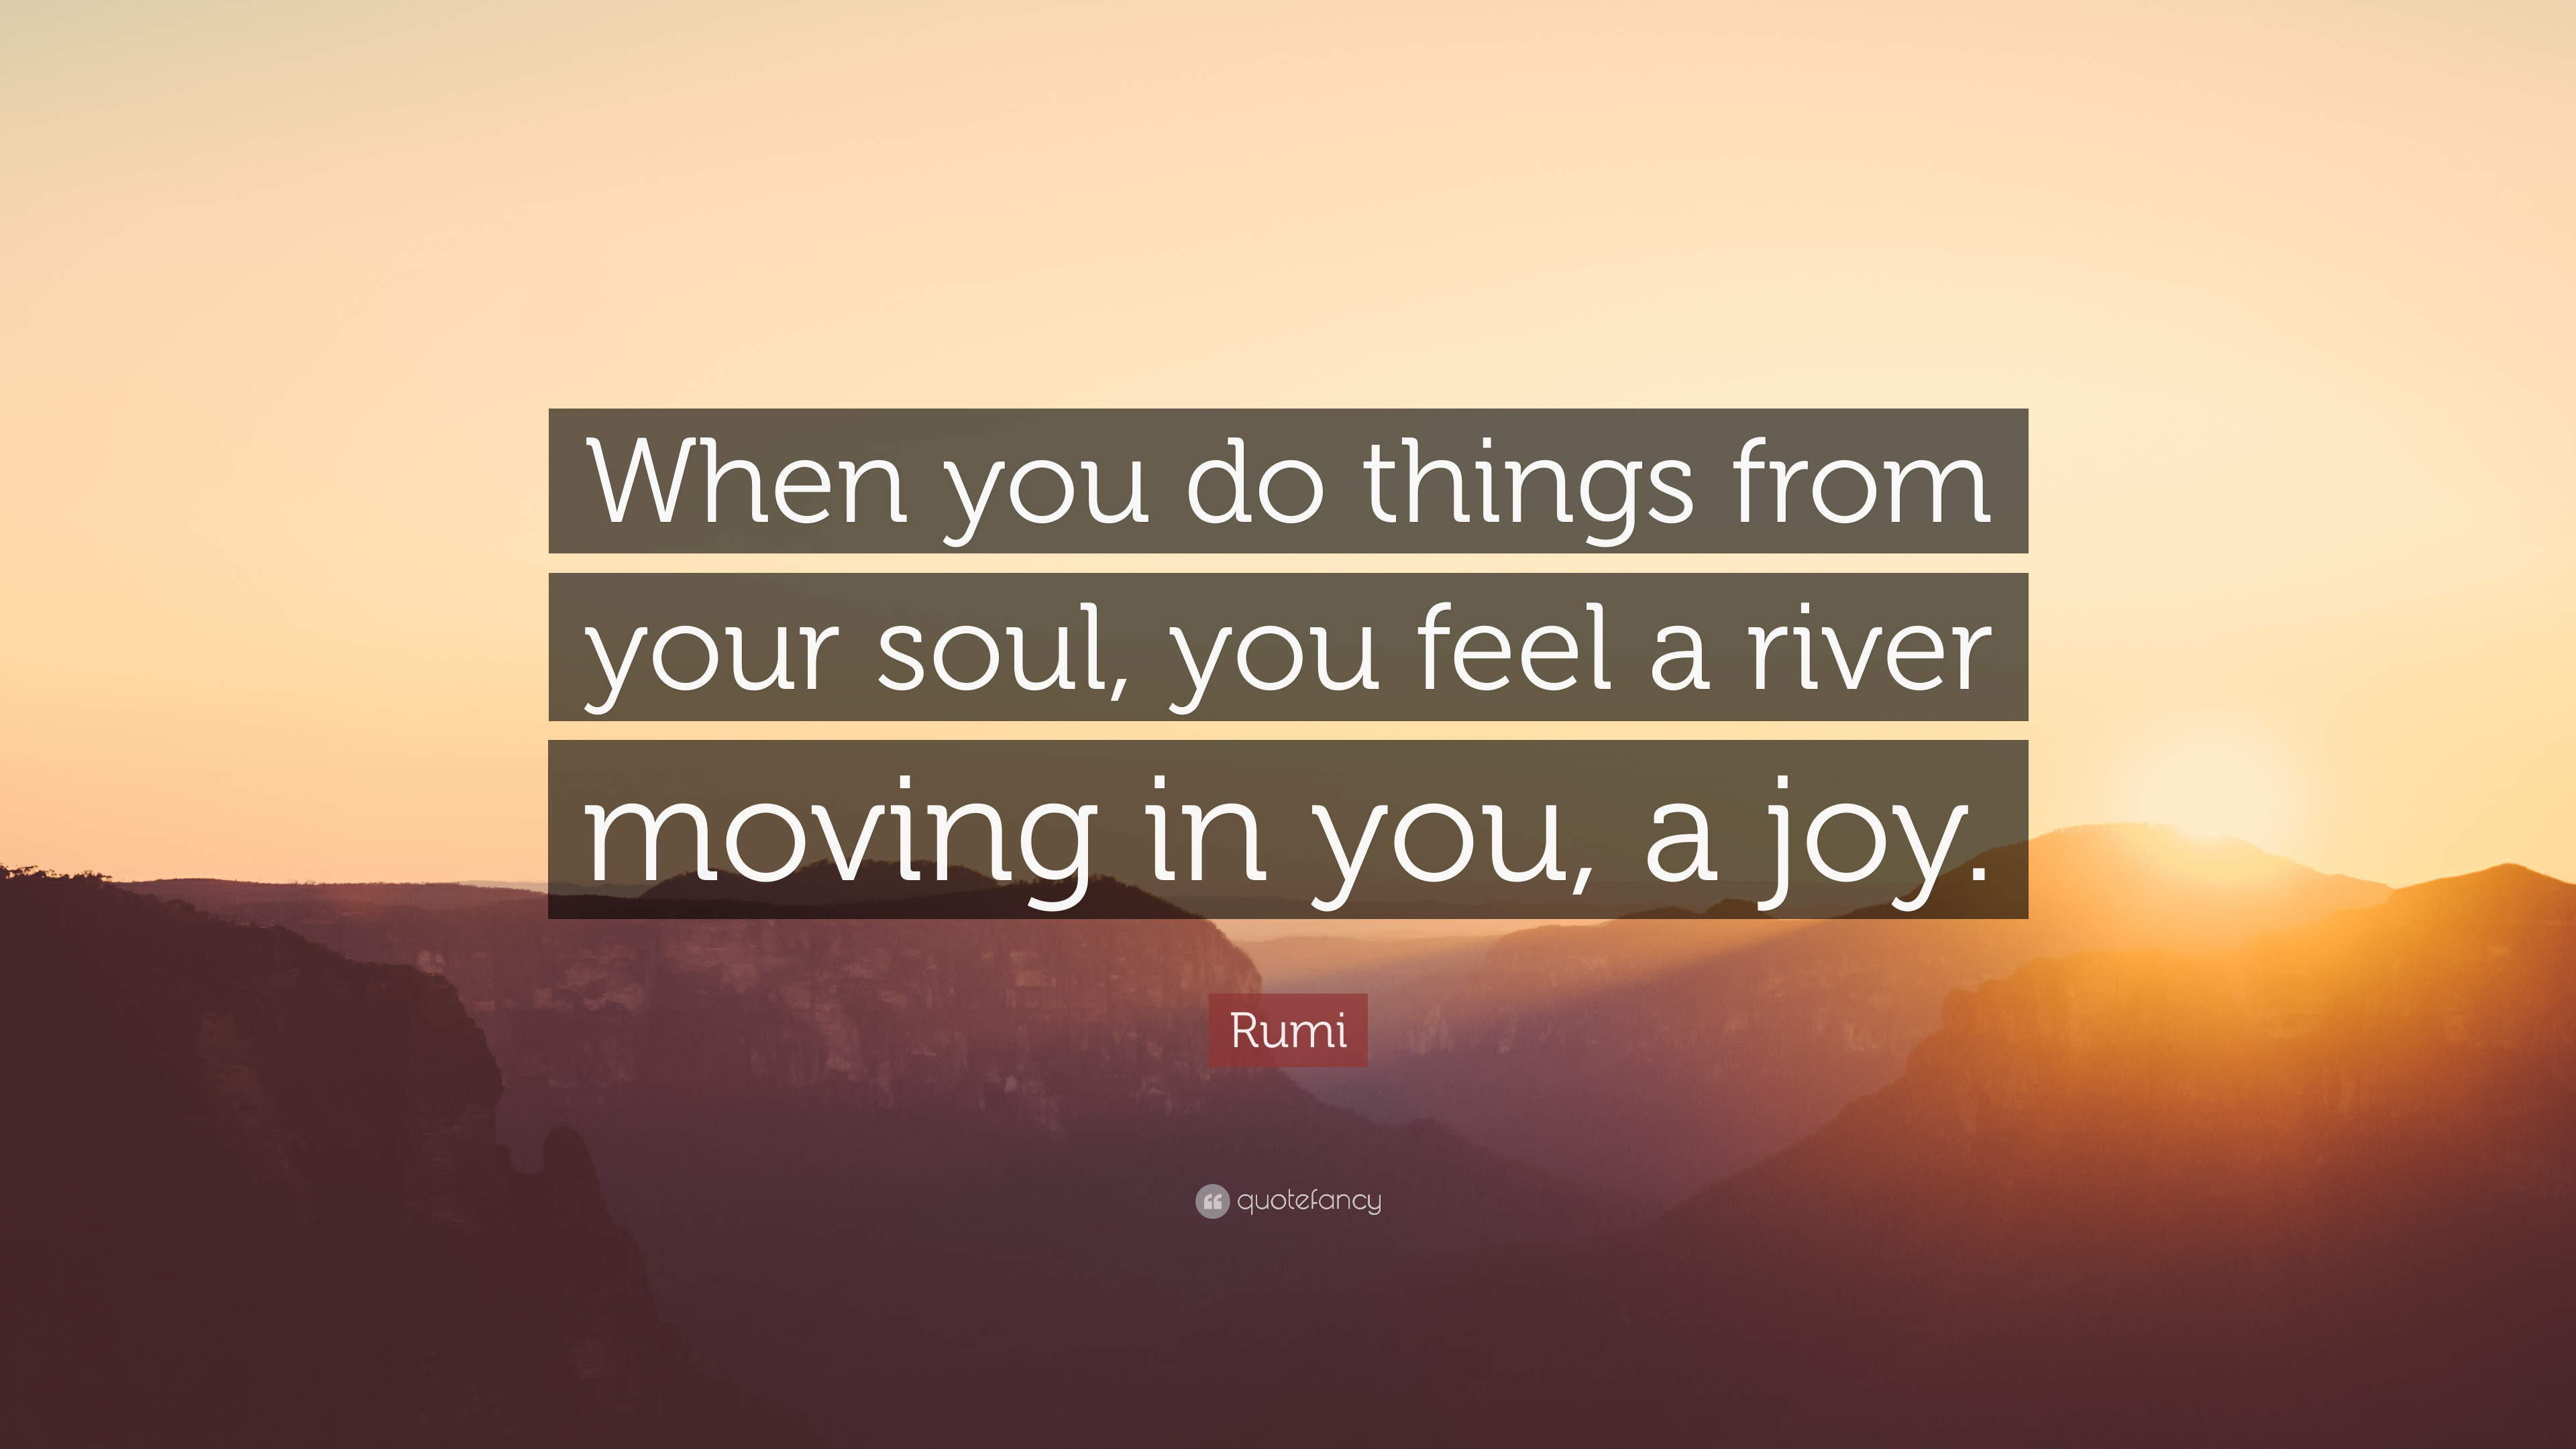 Rumi Quote When You Do Things From Your Soul You Feel A River